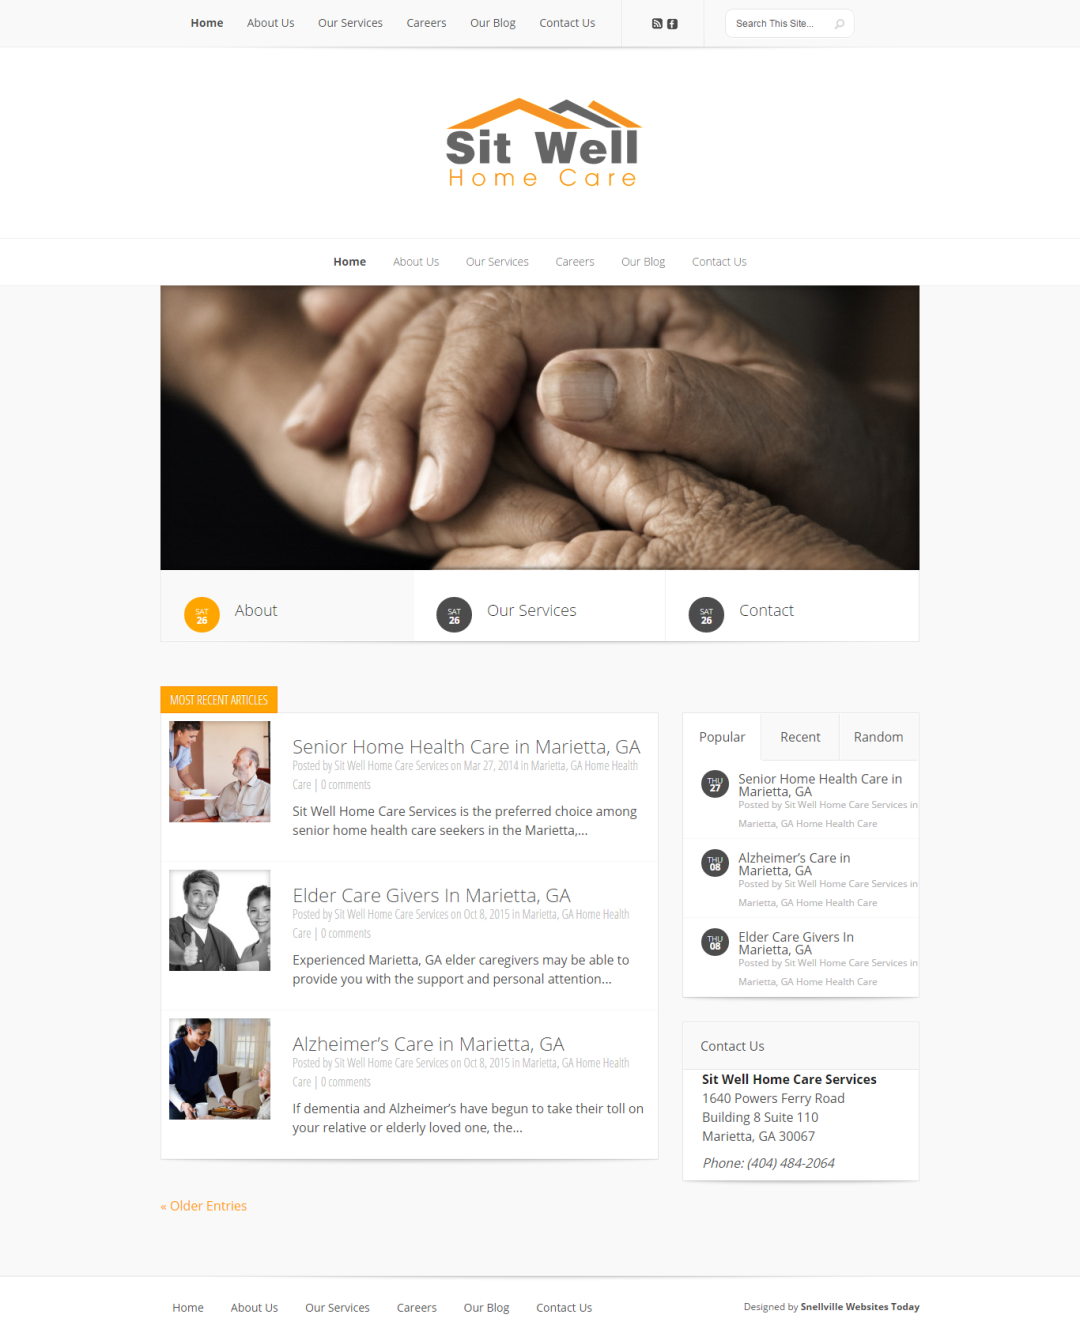 Sit Well Home Care Services